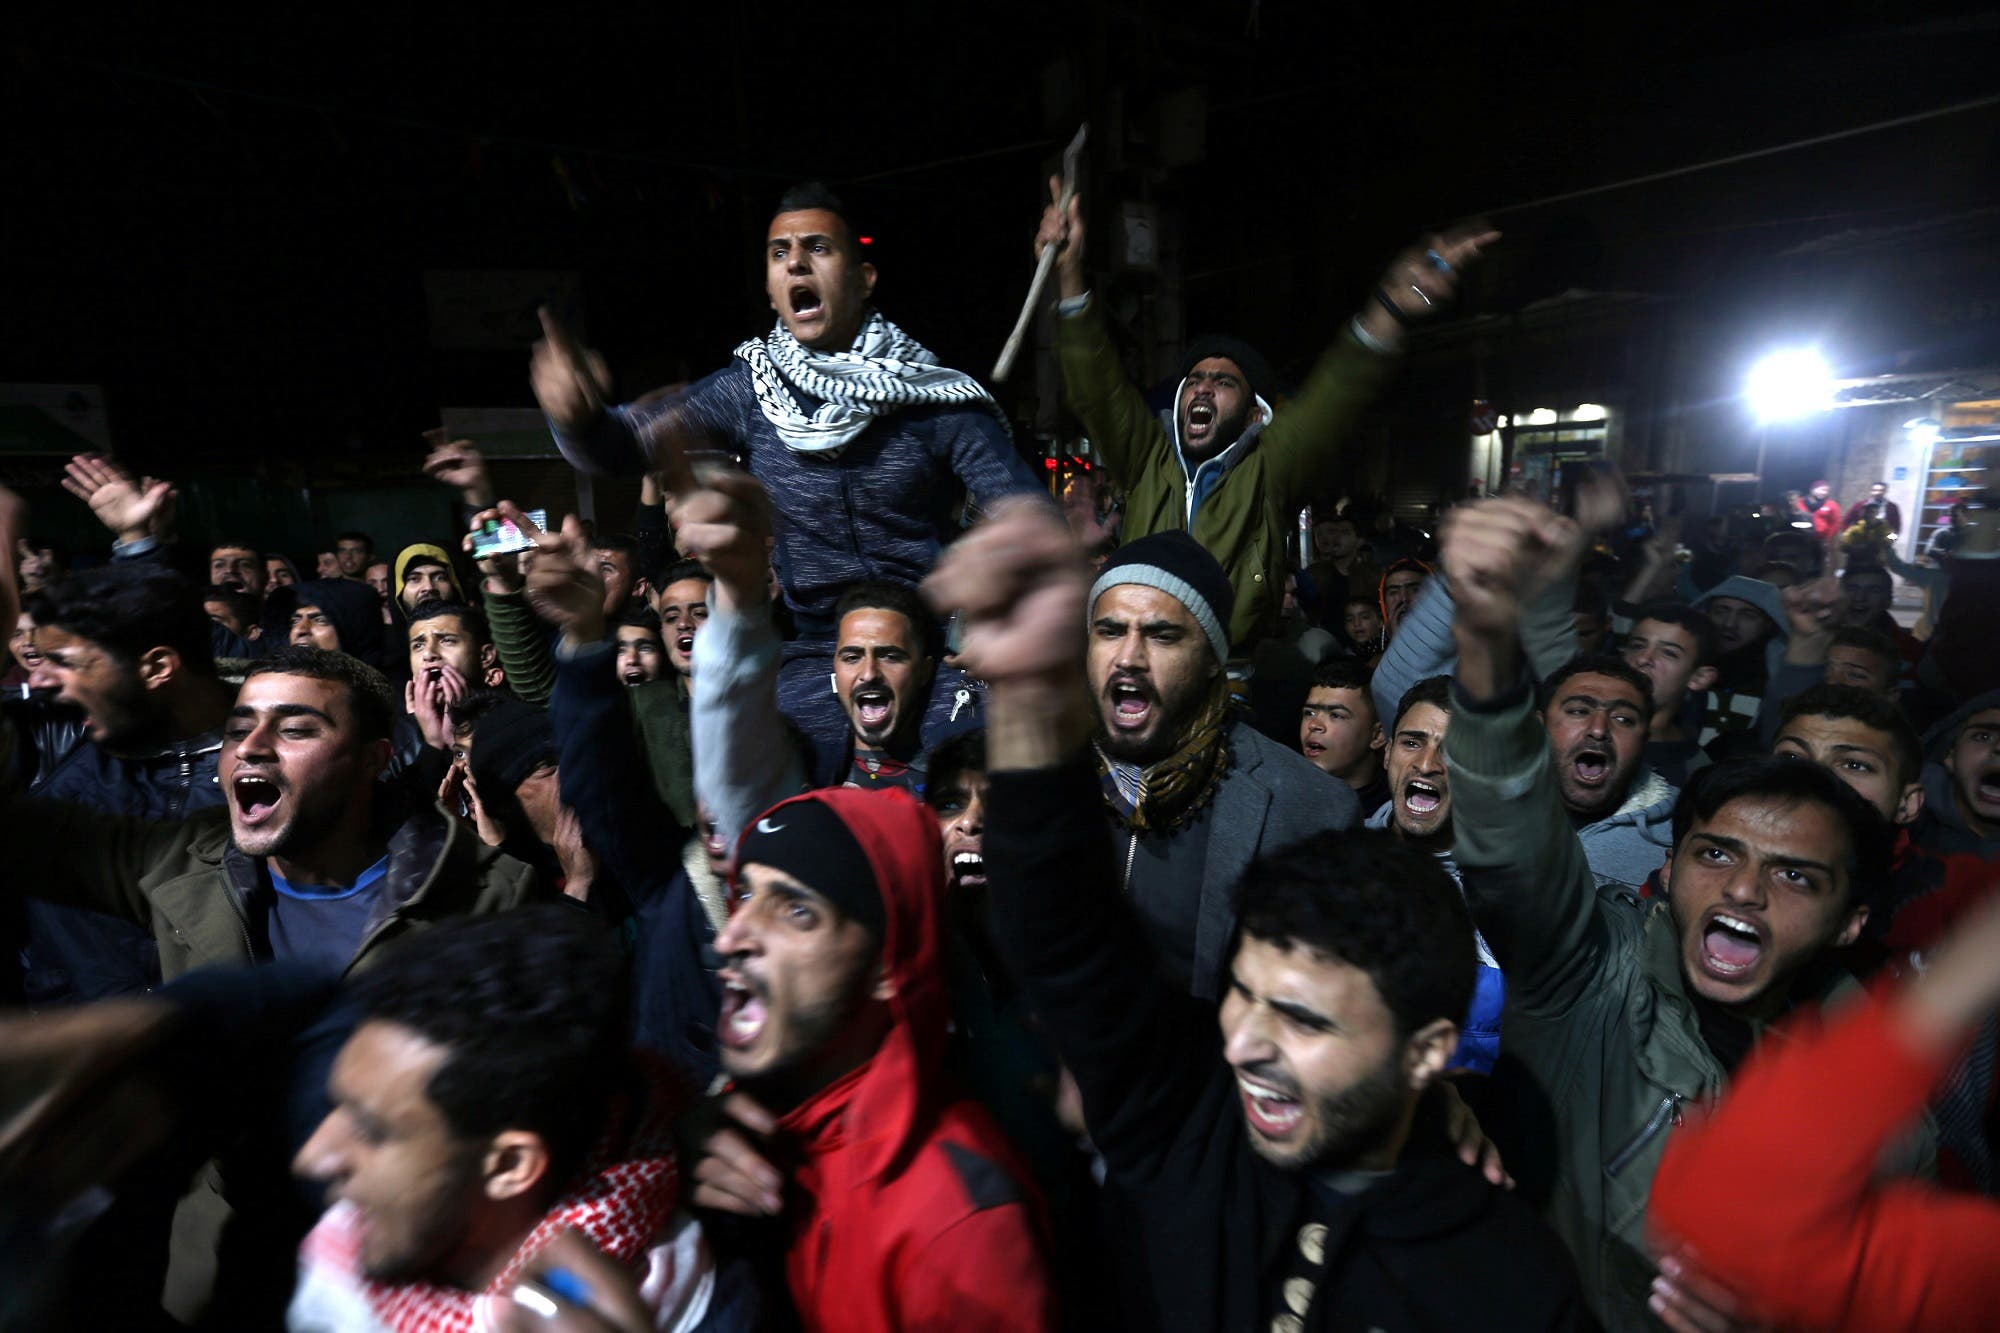 Palestinians react during a protest in Khan Younis in the southern Gaza Strip on December 6, 2017. (Reuters)